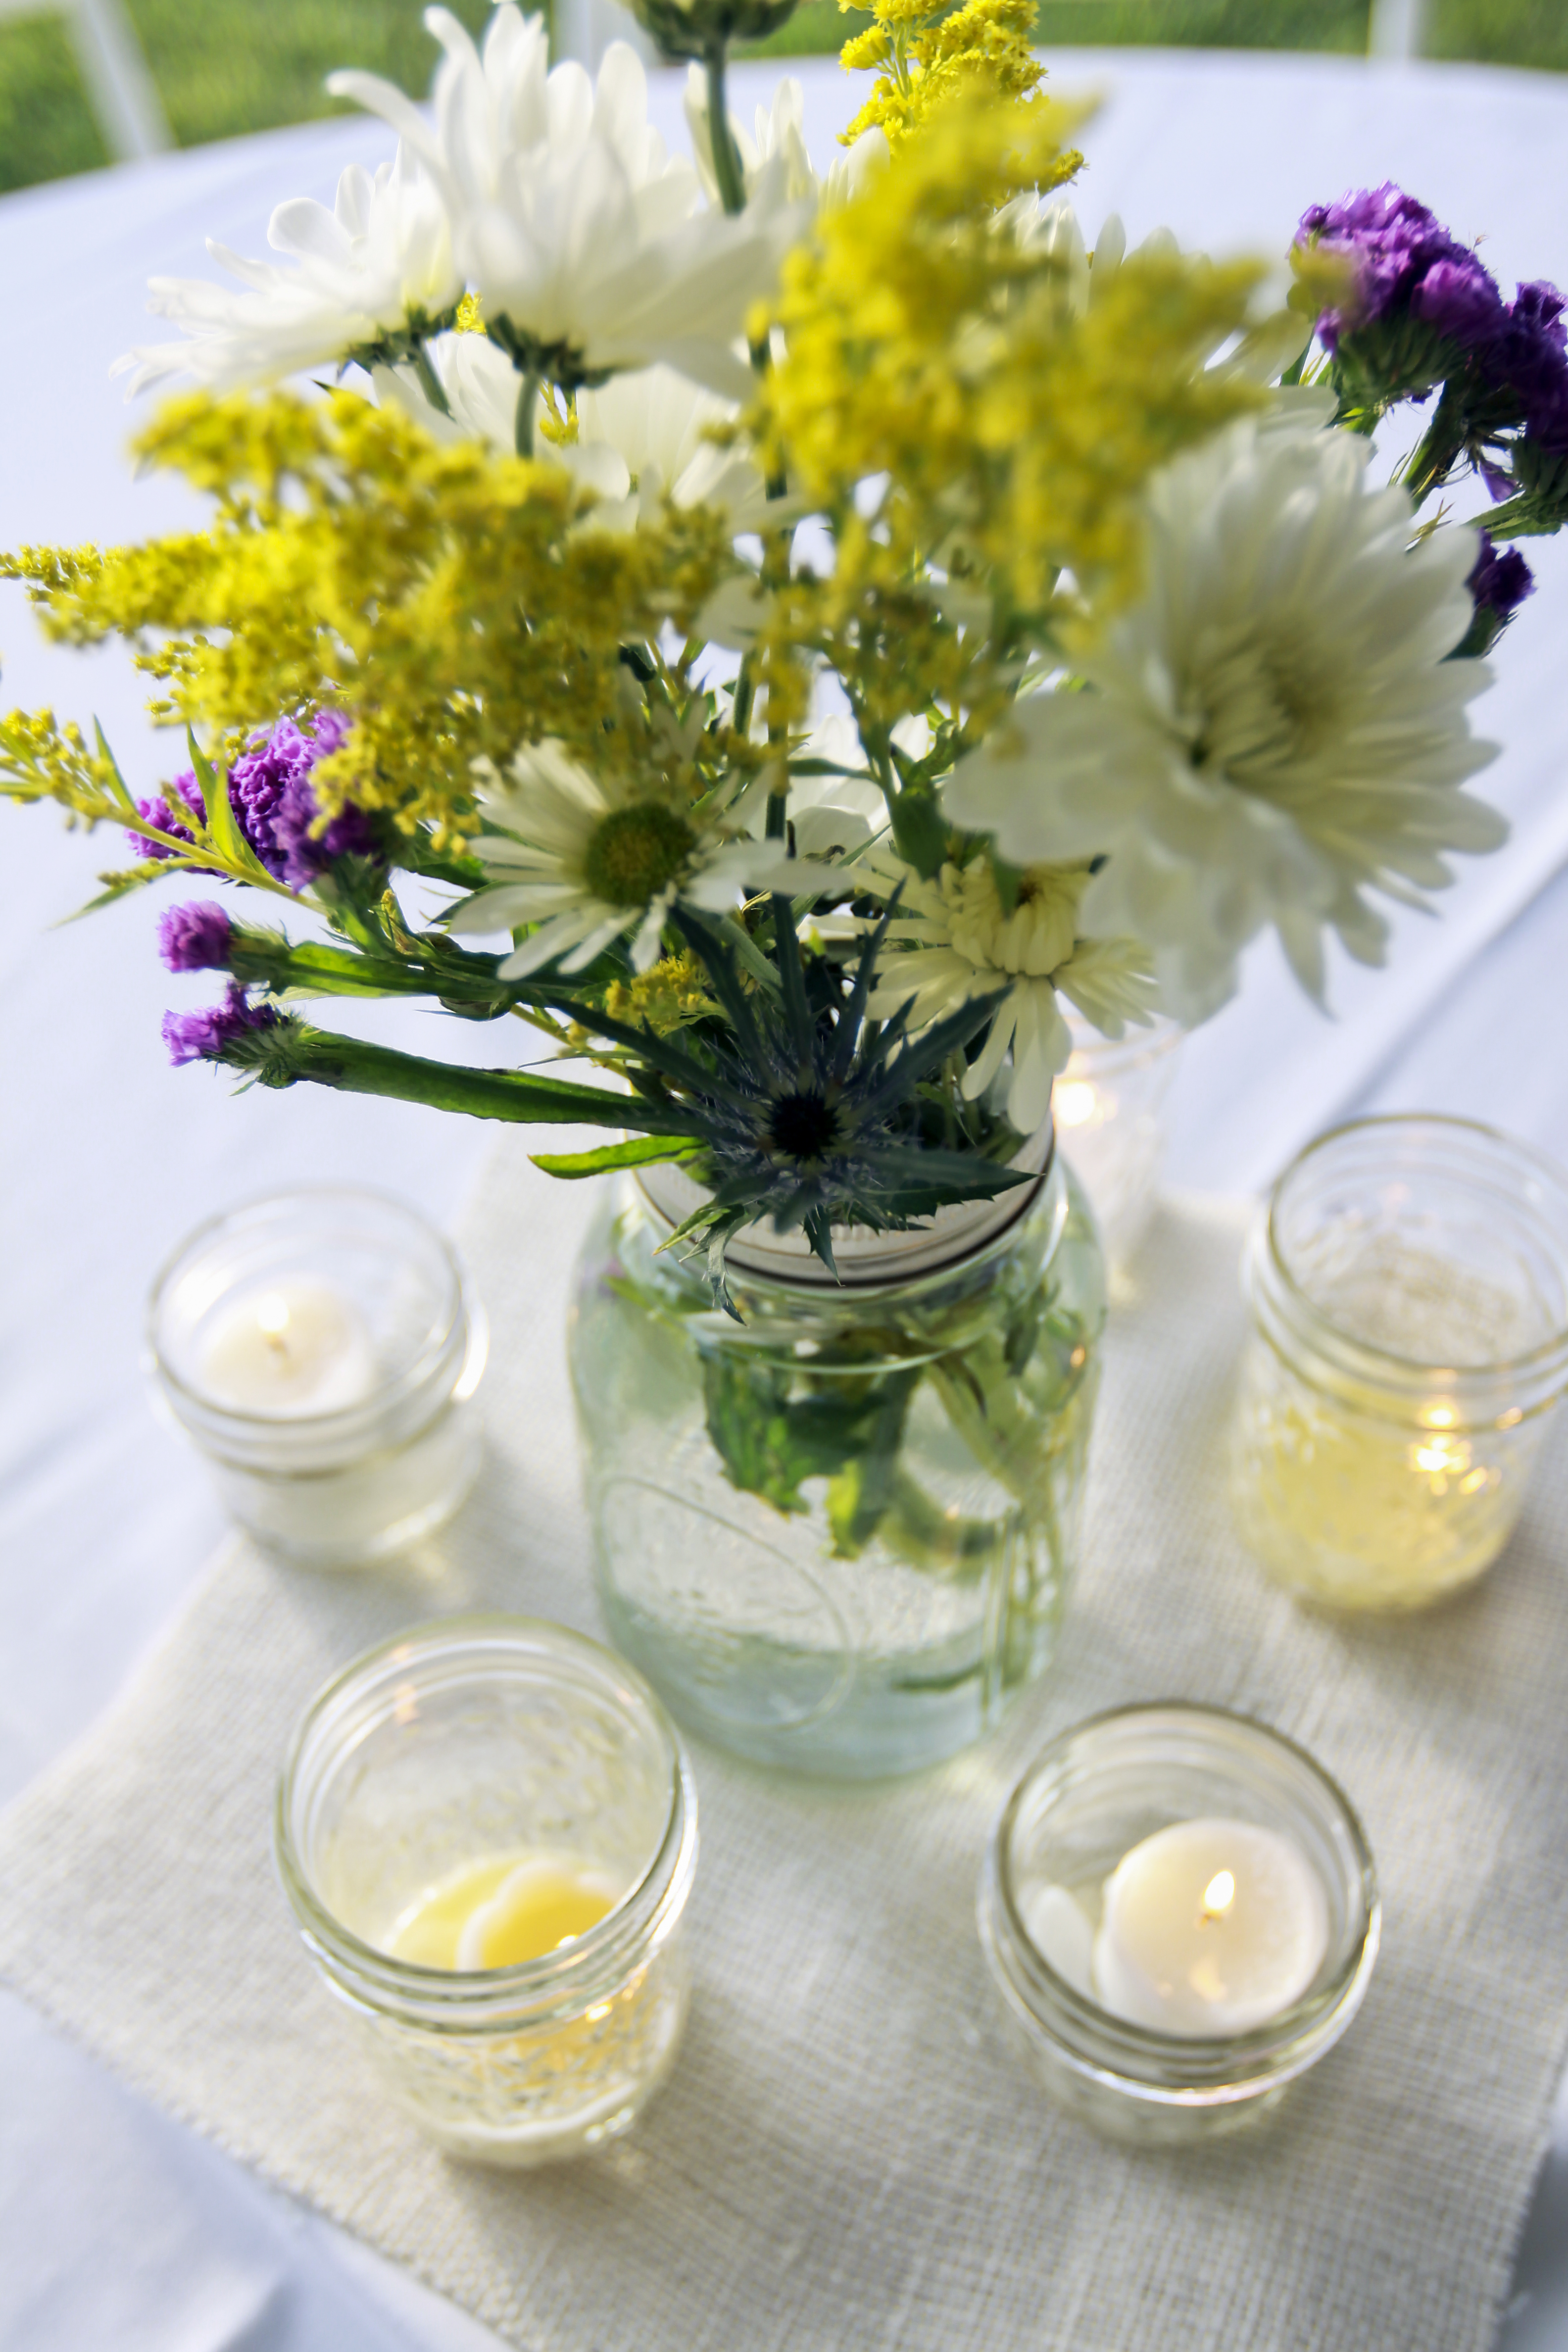 Flowers & Decor, Flowers, Jars, Mason